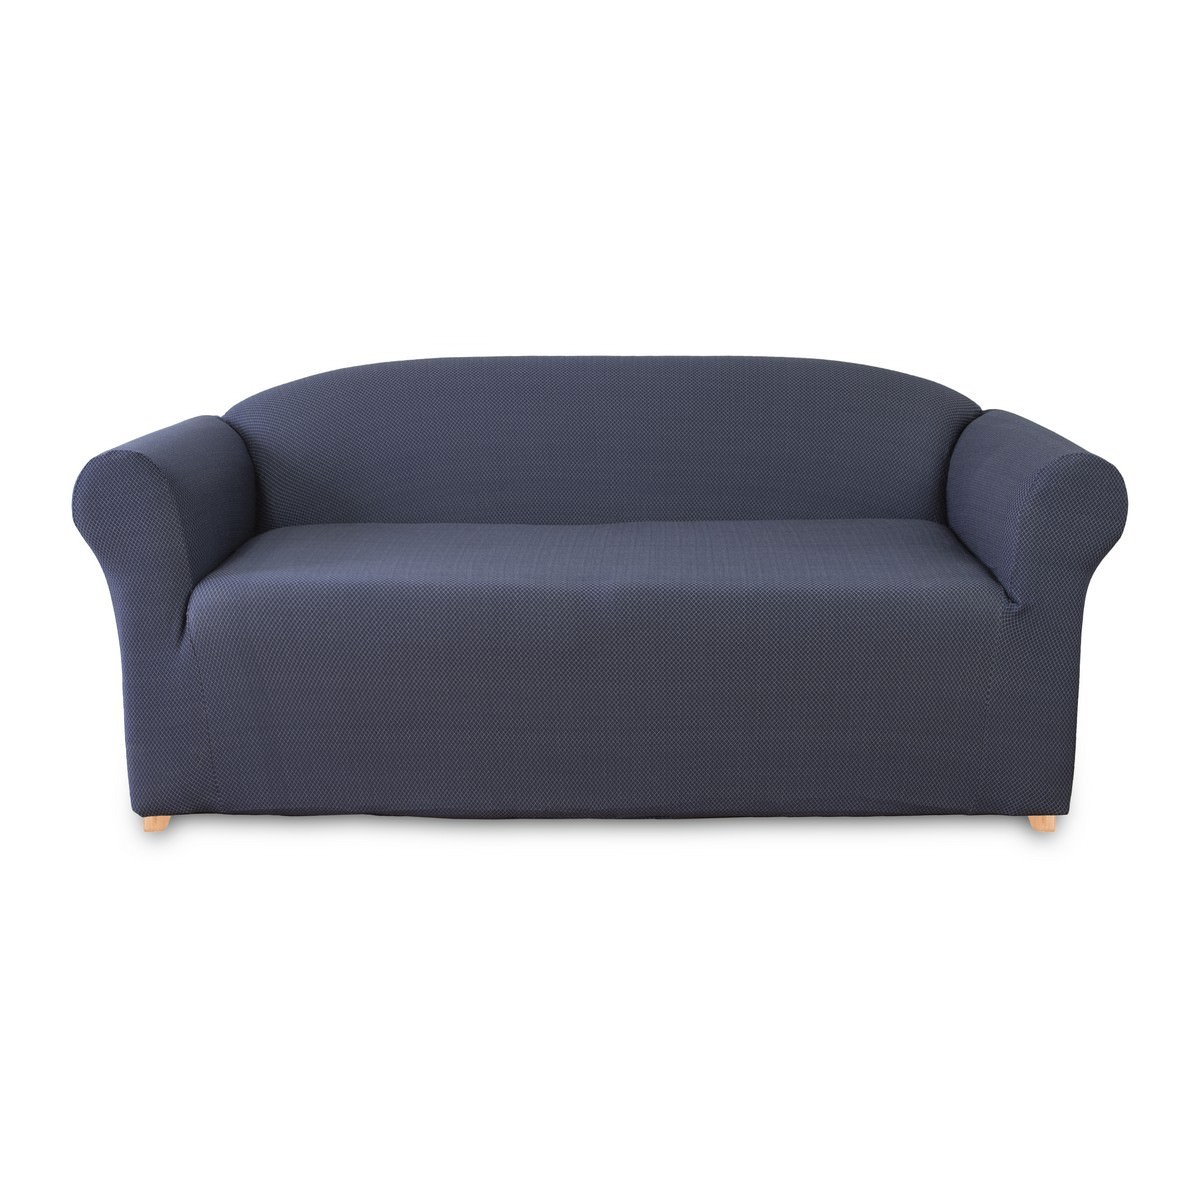 Sure Fit Diamond Sofa Cover, 2 Seater, Navy